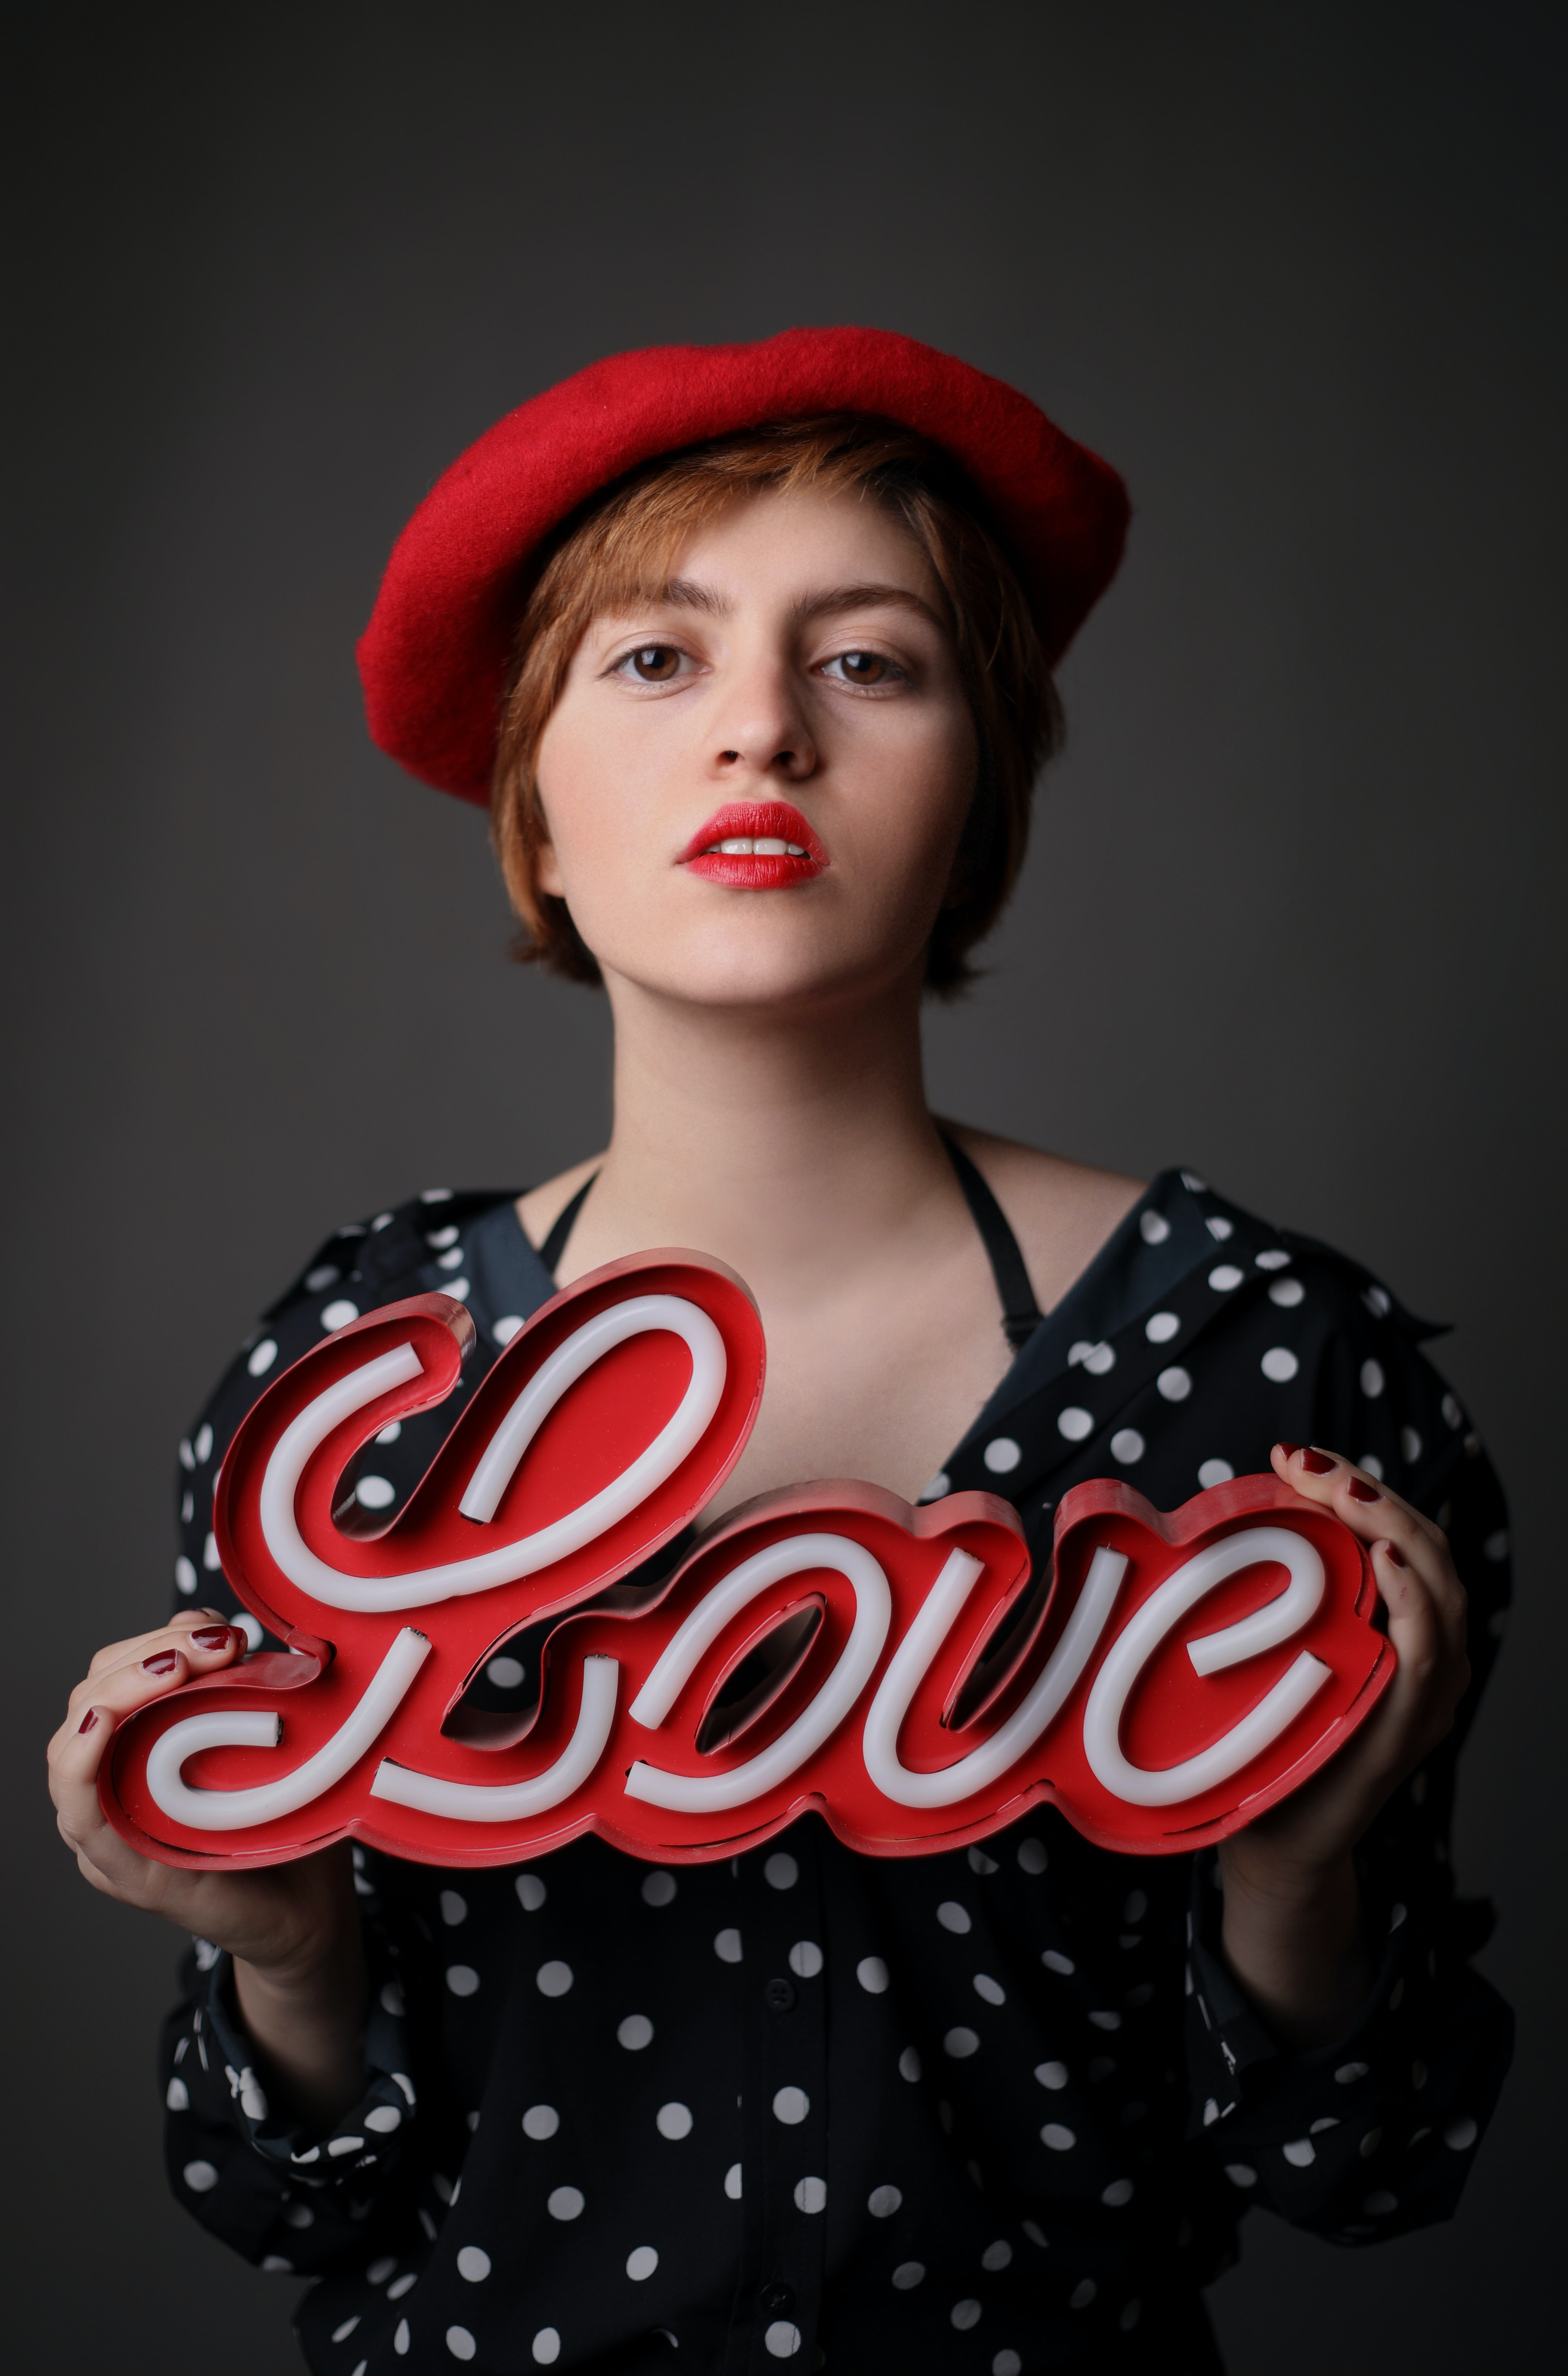 woman wearing black and white polka-dot top holding love freestanding letter